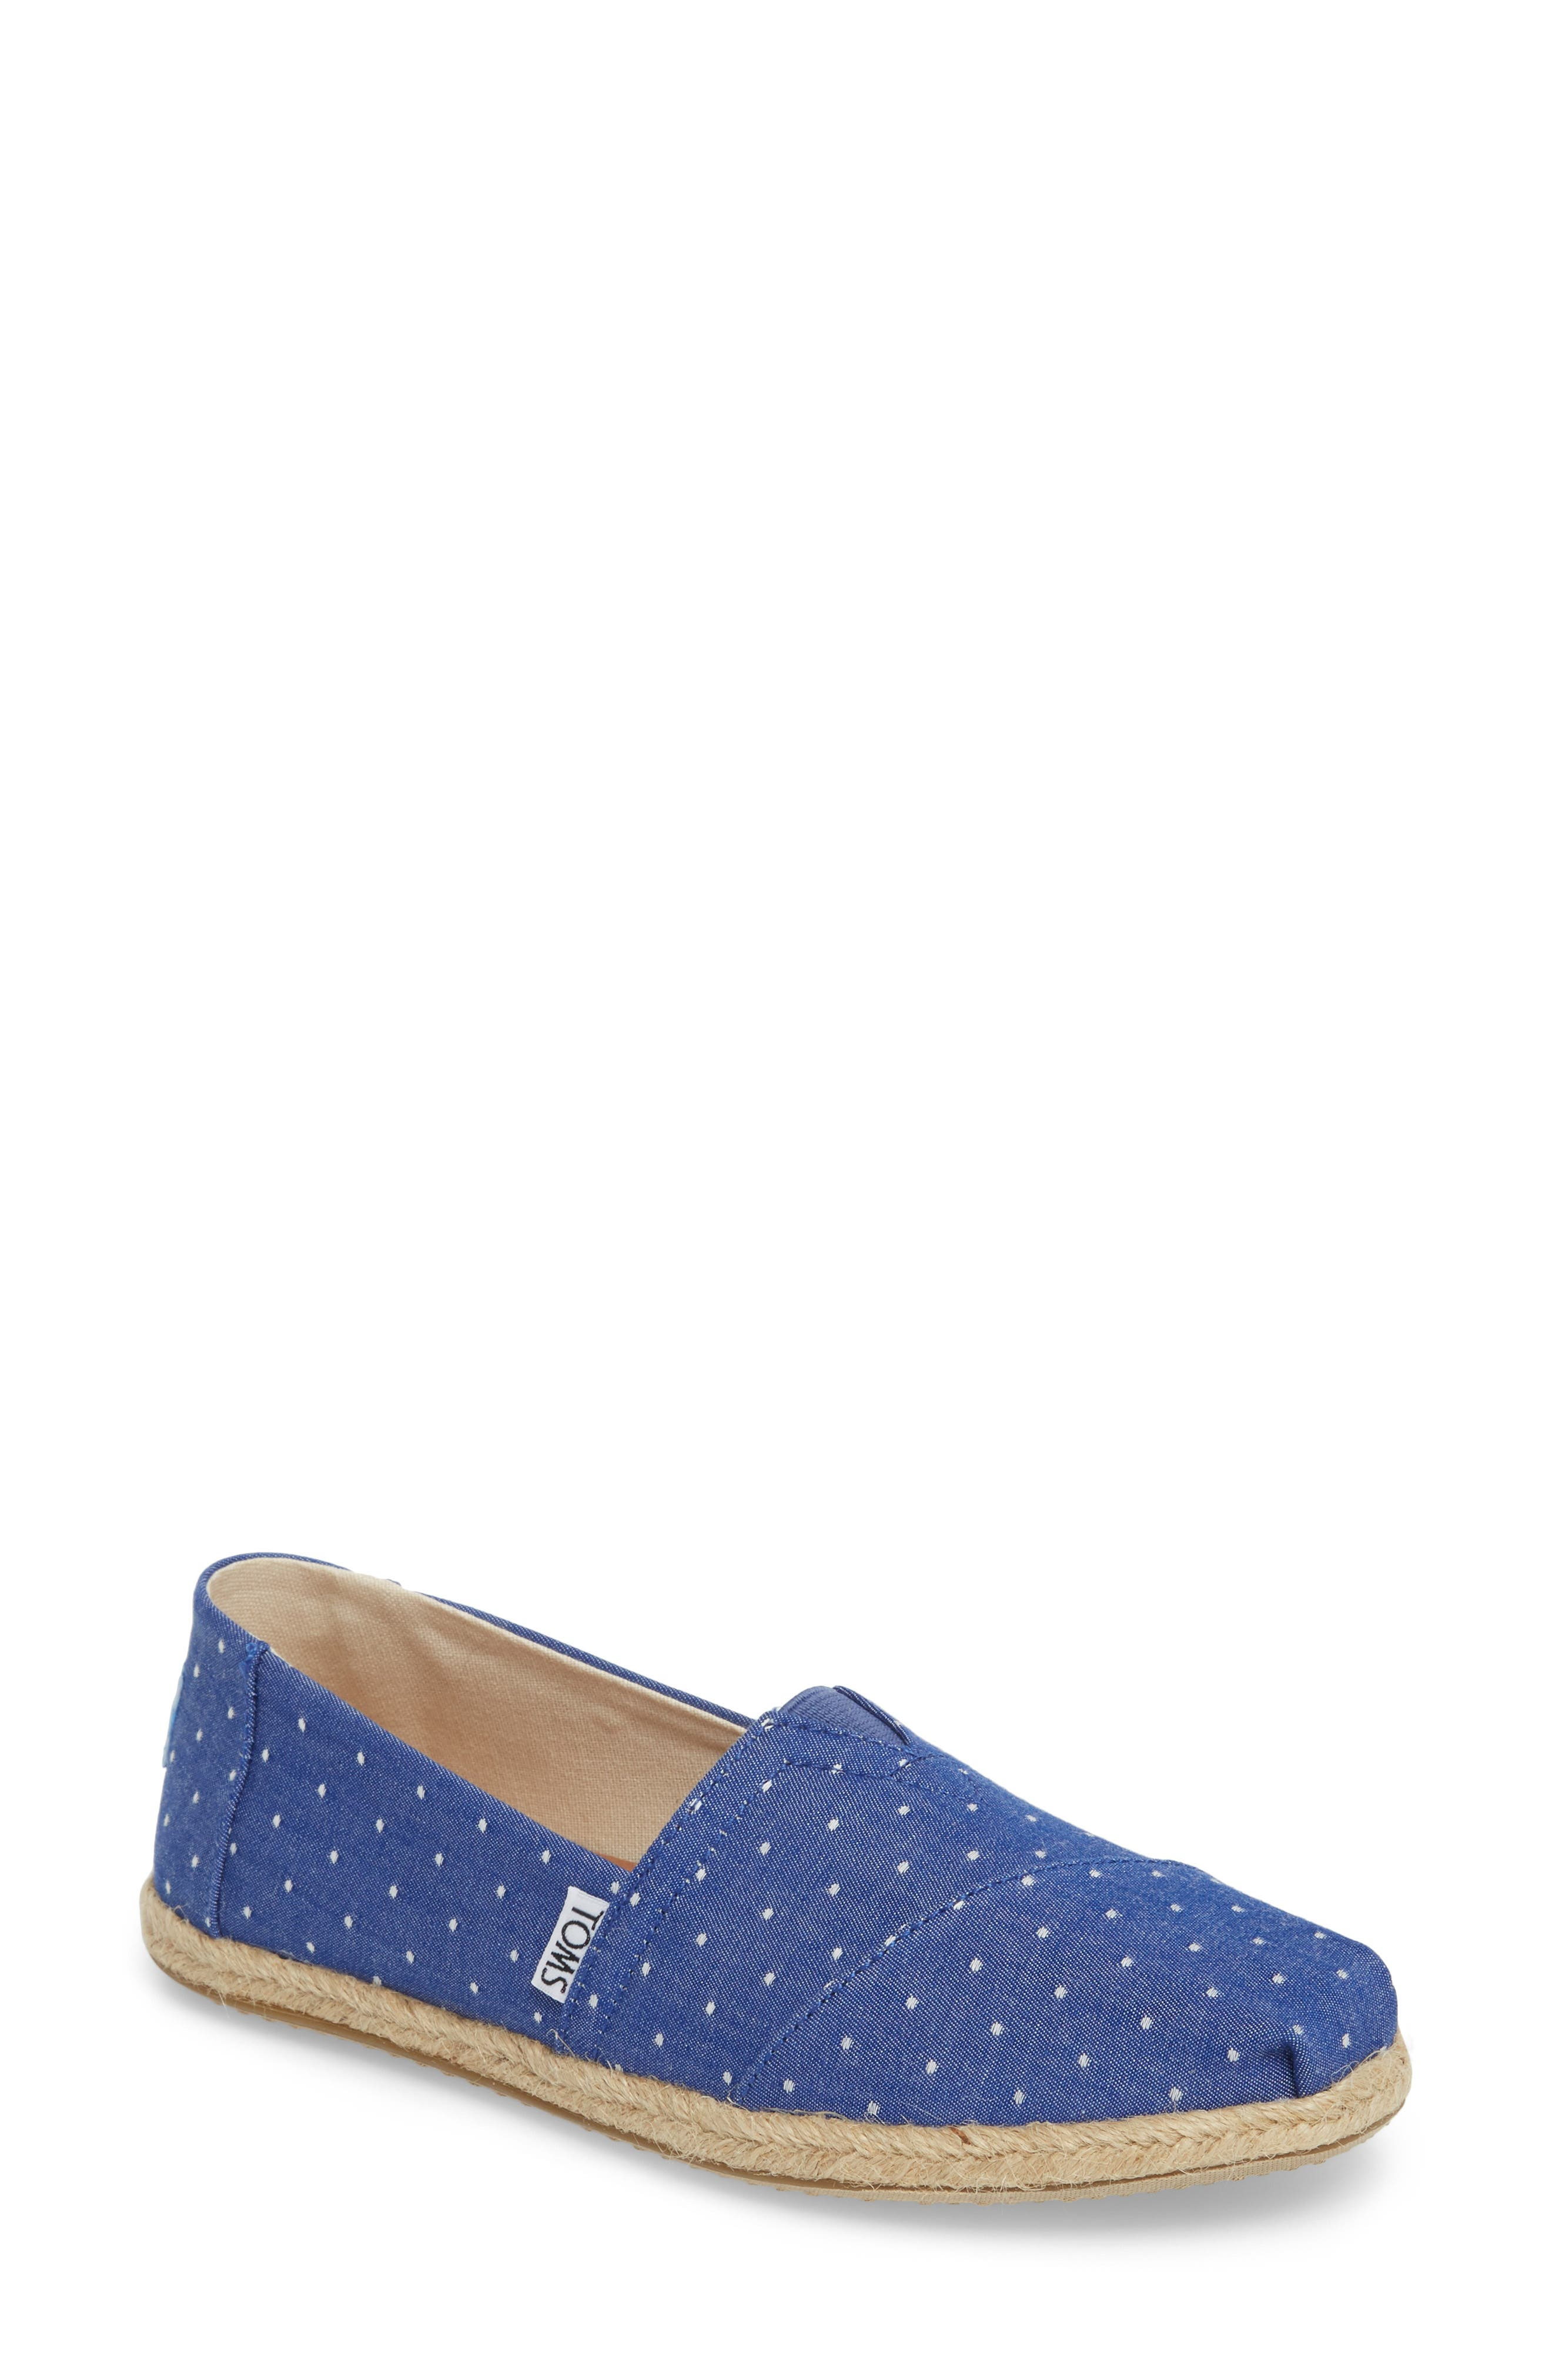 Deconstructed Alpargata Slip-On,                         Main,                         color, Blue Dot Fabric